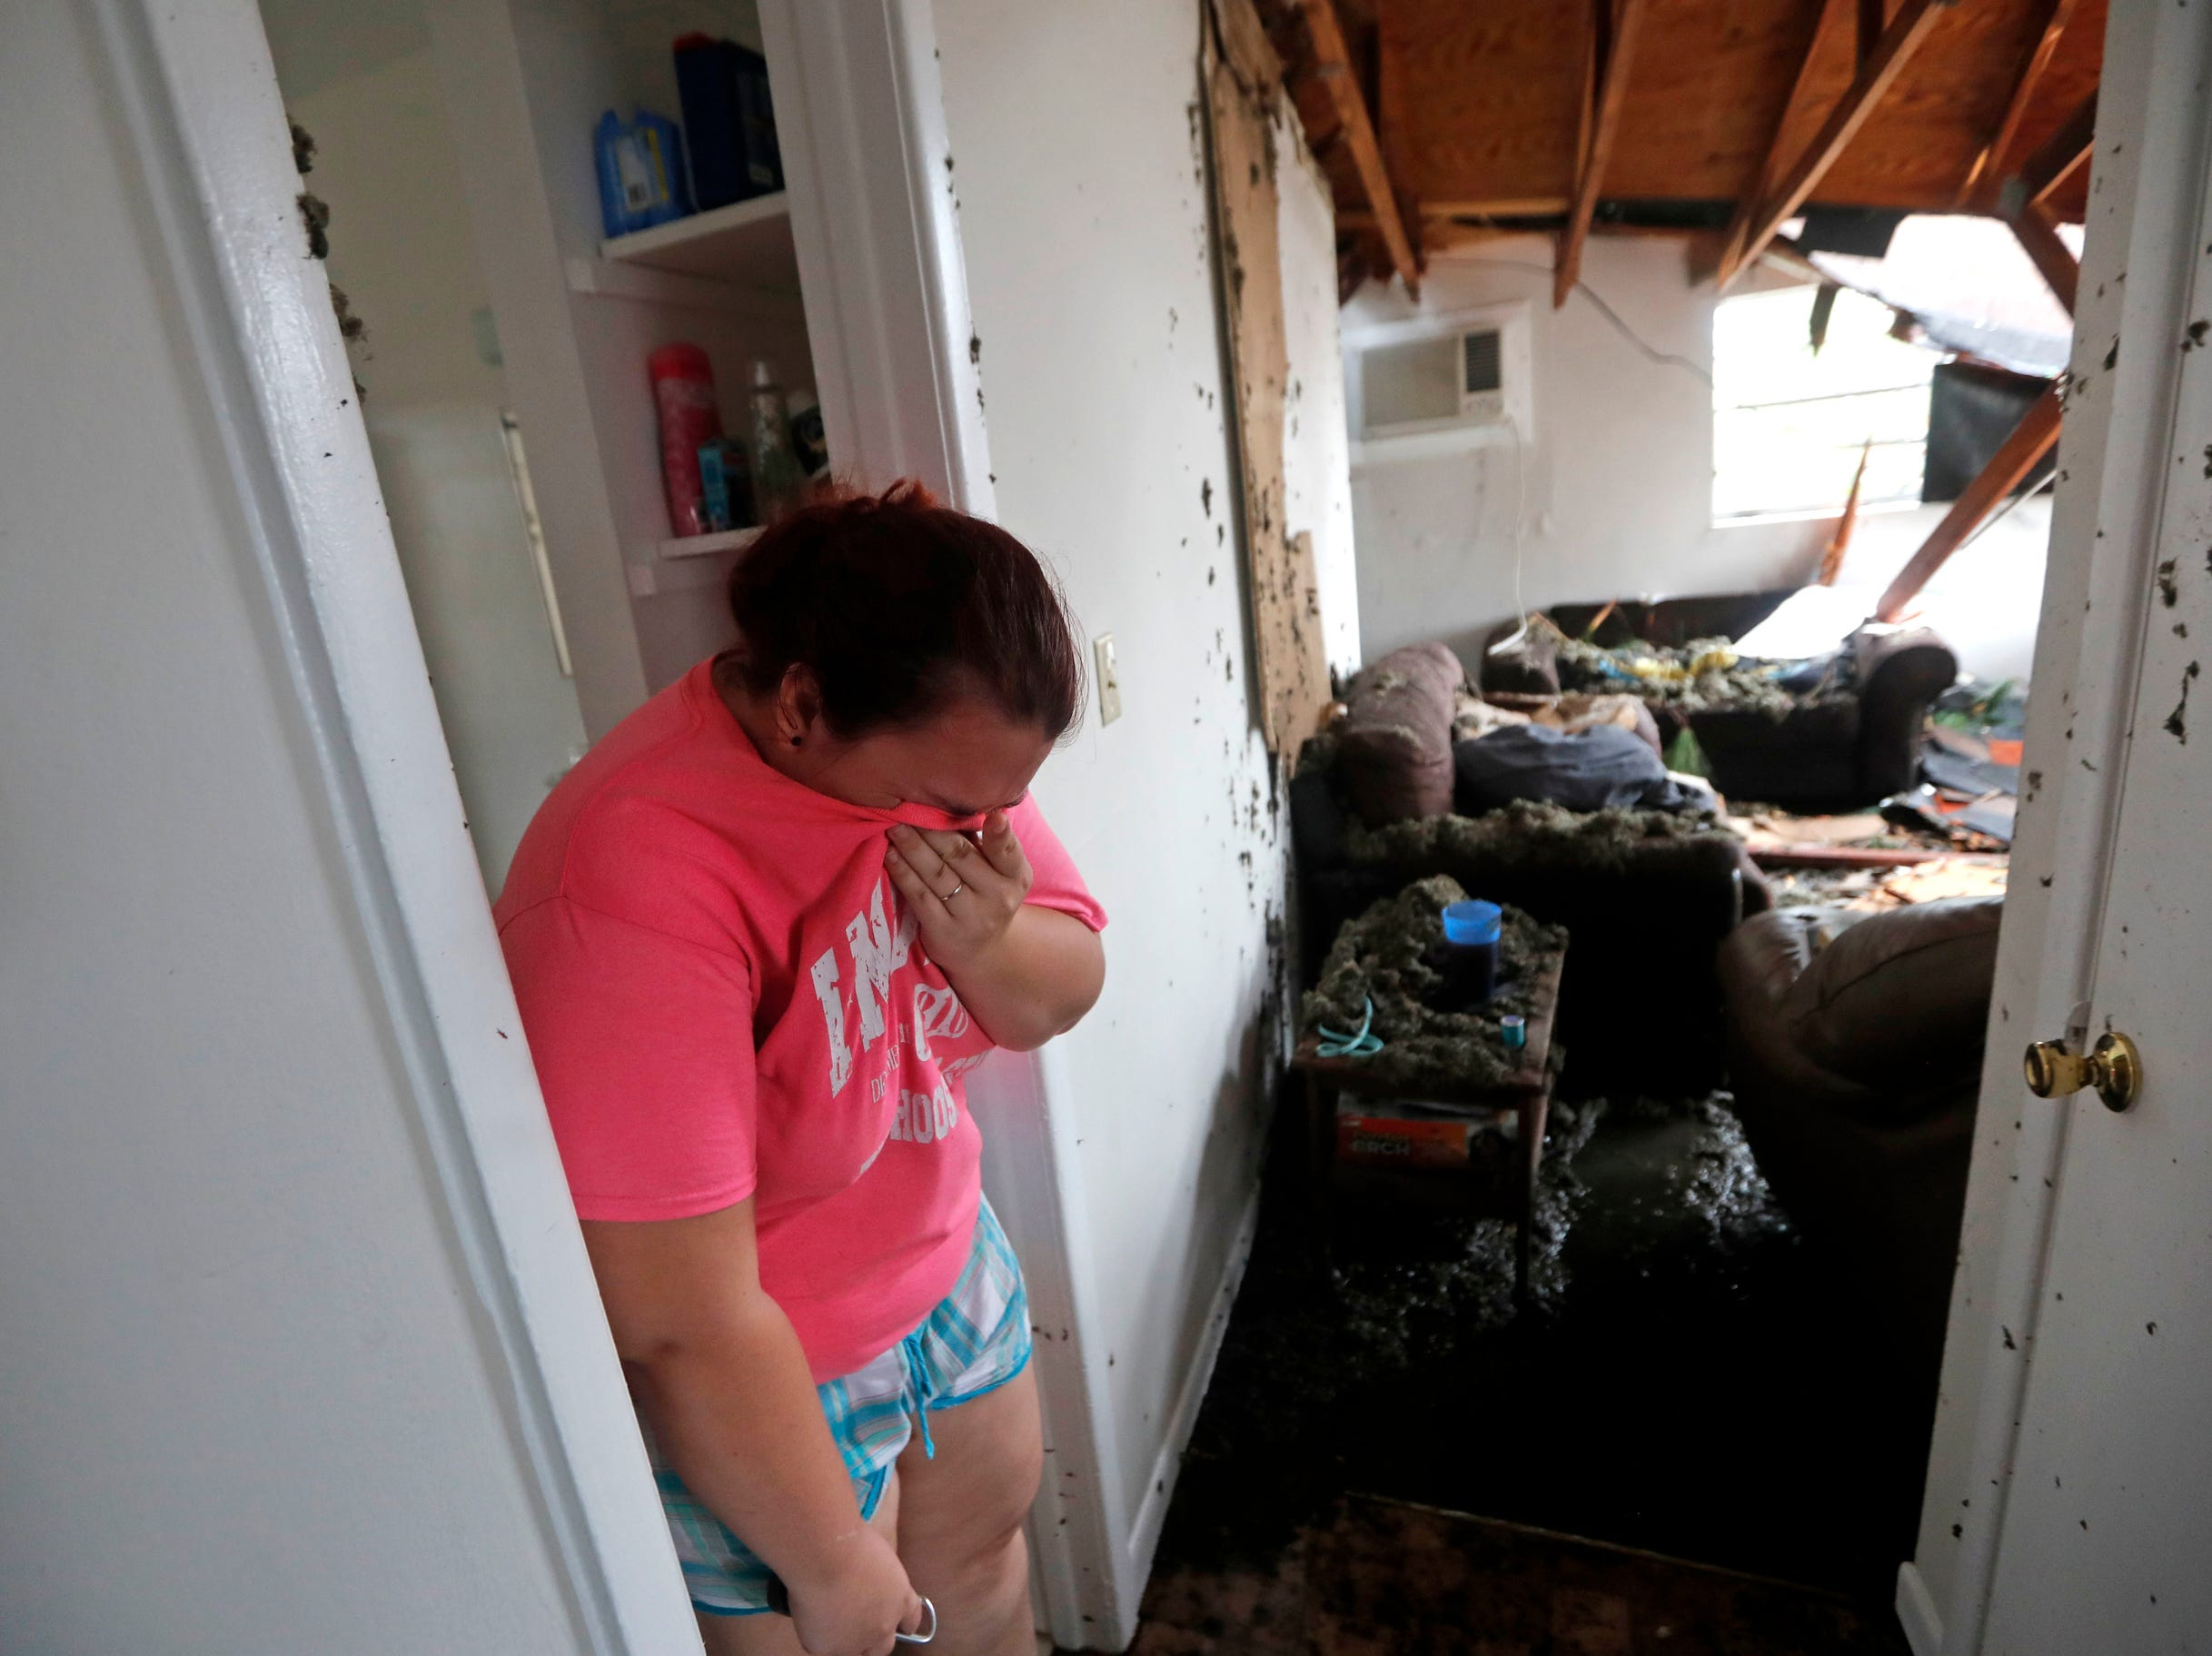 Kaylee O'Brian weeps inside her home after several trees fell on it during Hurricane Michael in Panama City, Fla.